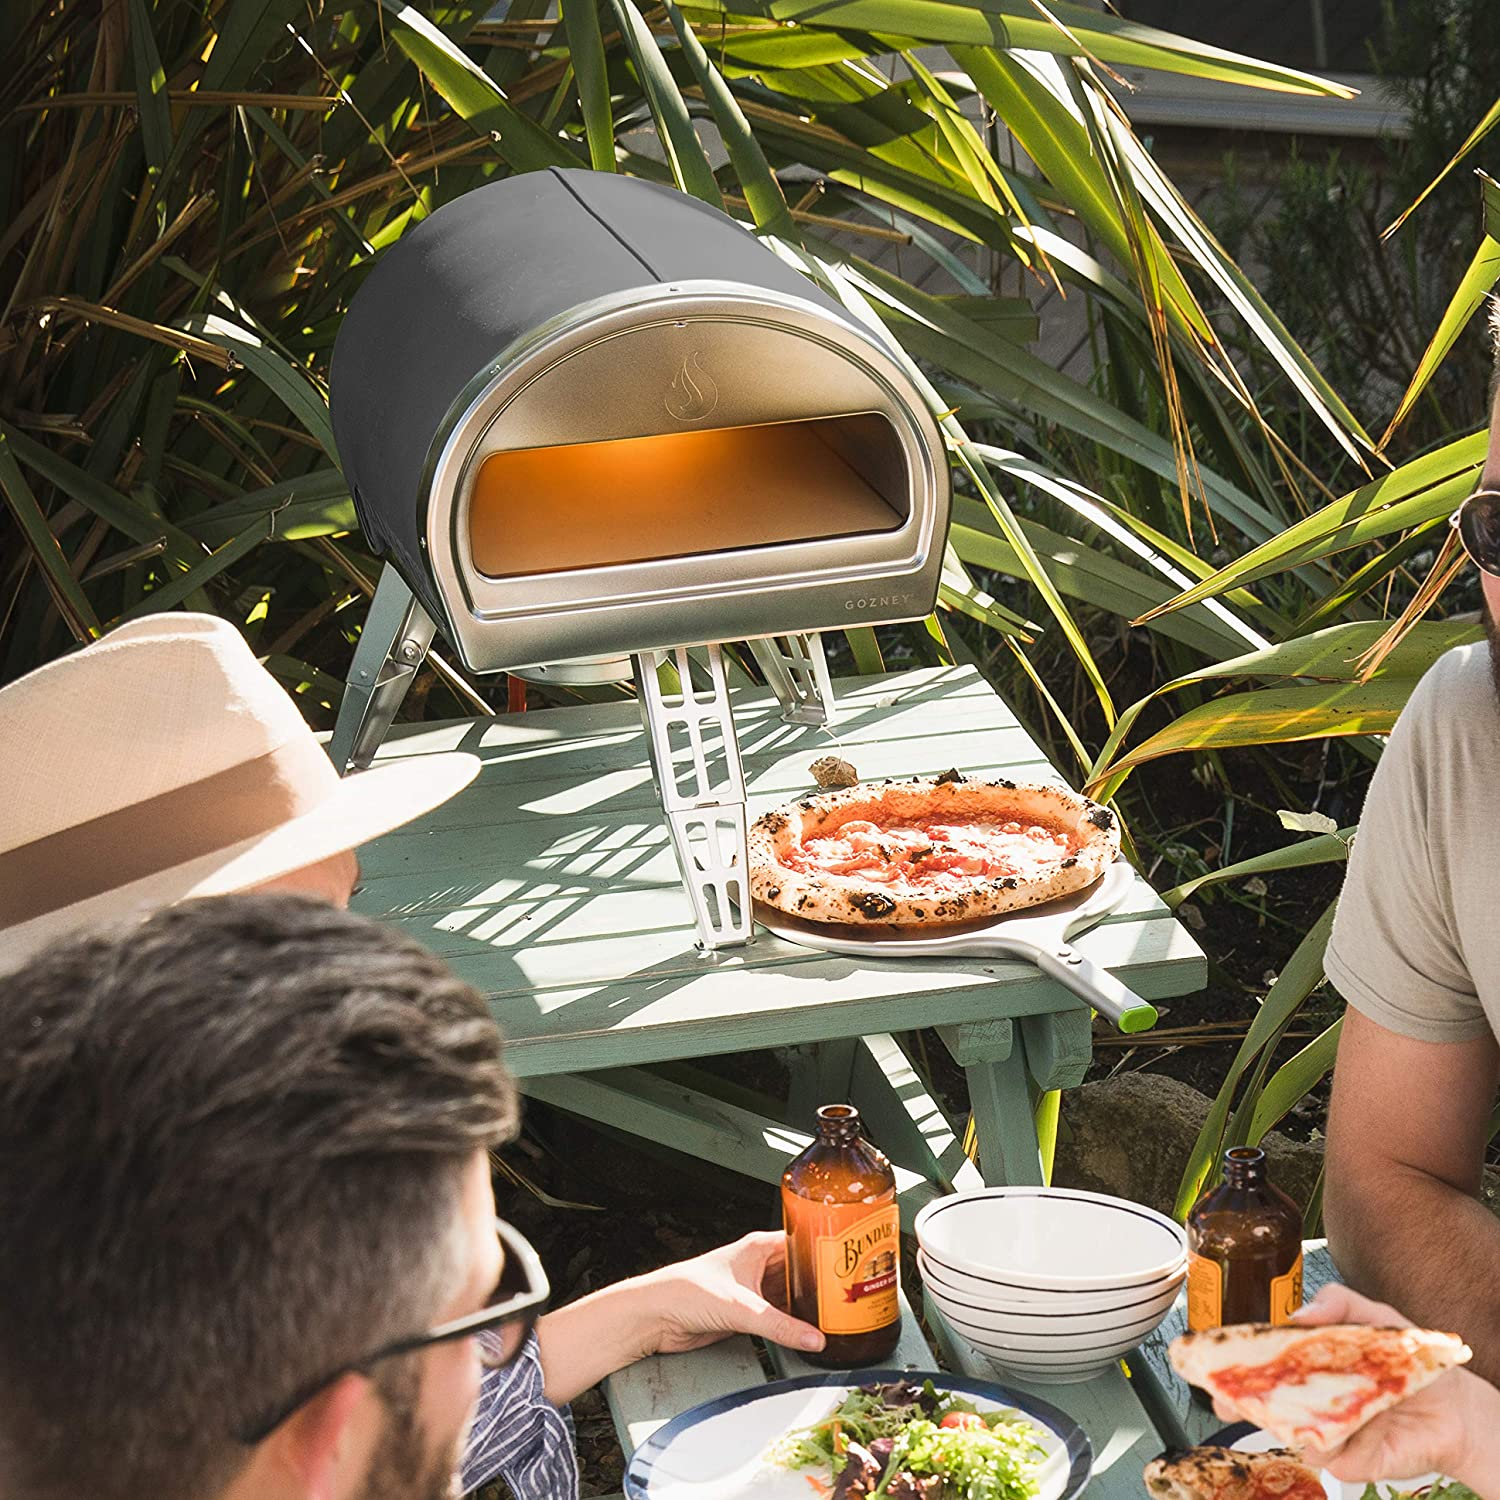 ROCCBOX Portable Outdoor Pizza